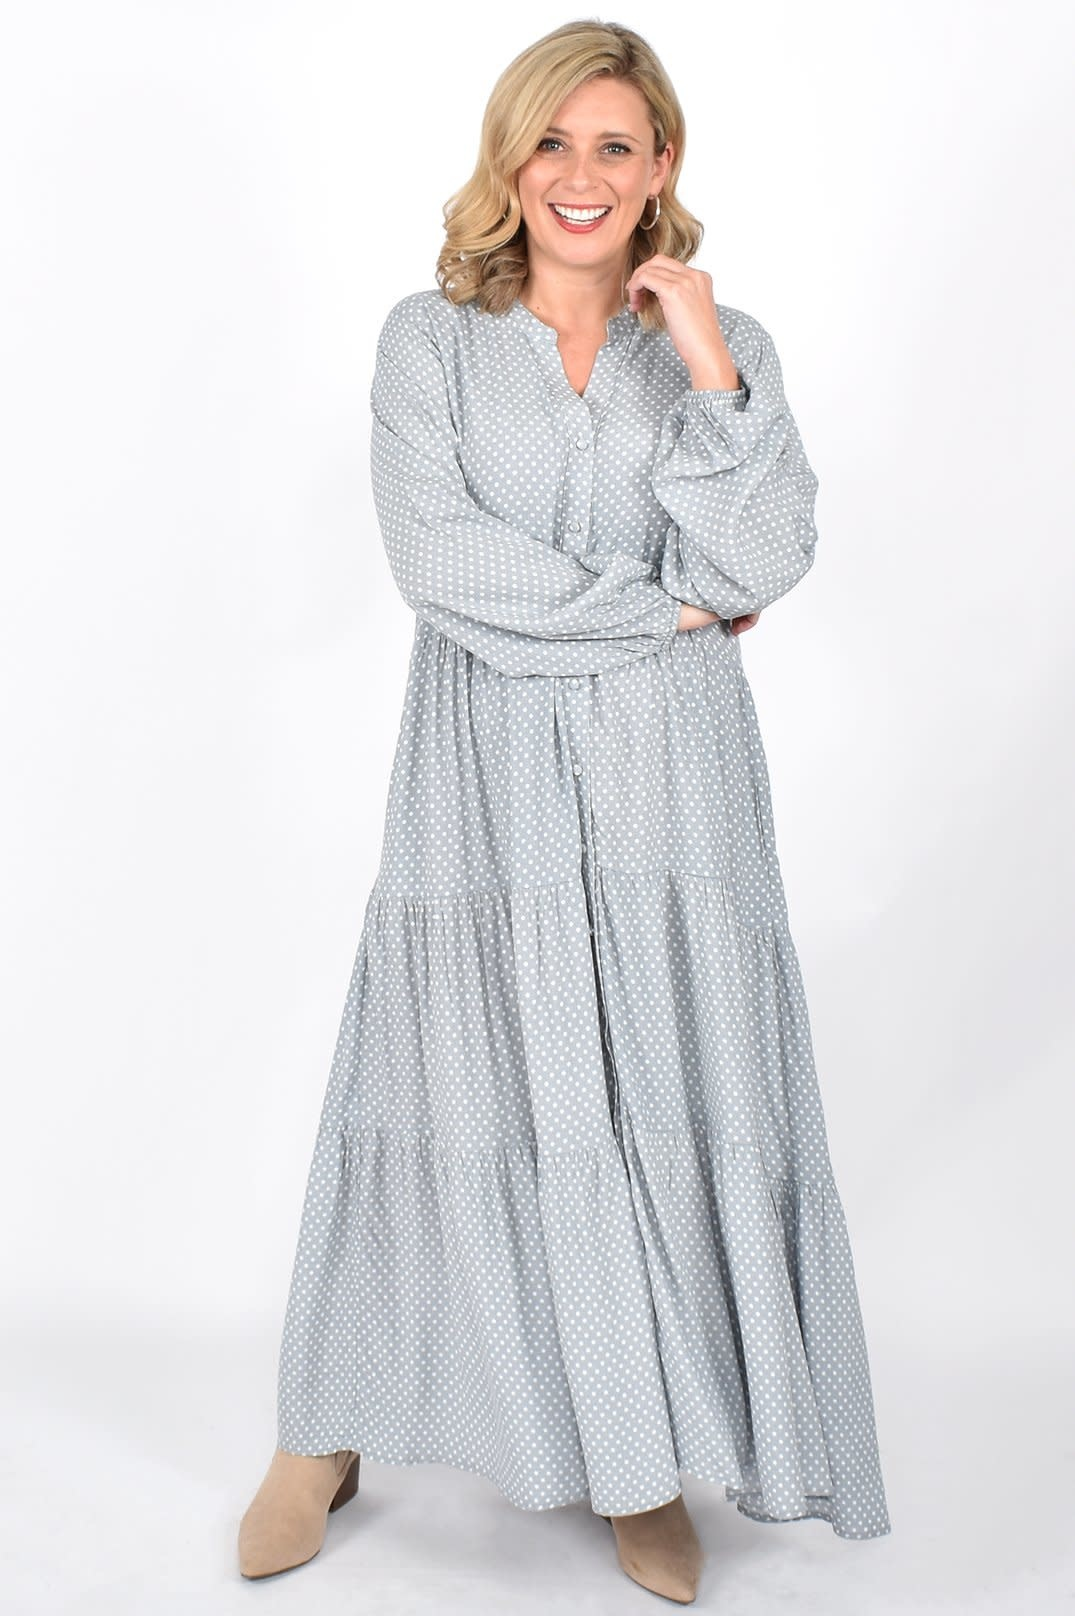 Maise LS Tiered Dress (N)